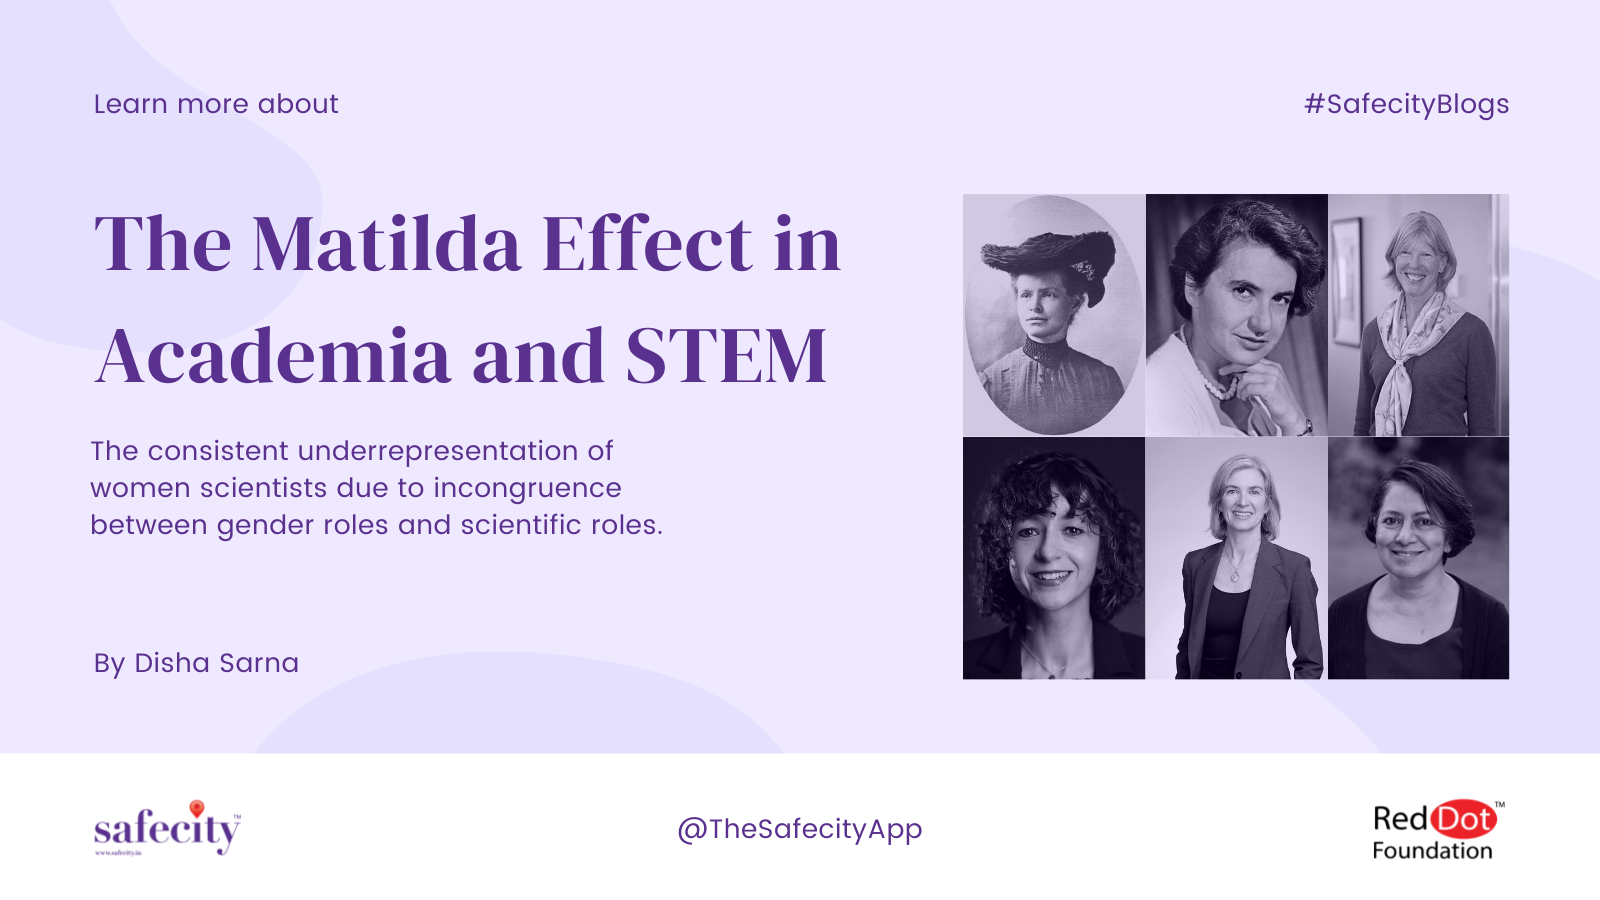 The Matilda Effect in Academia and STEM